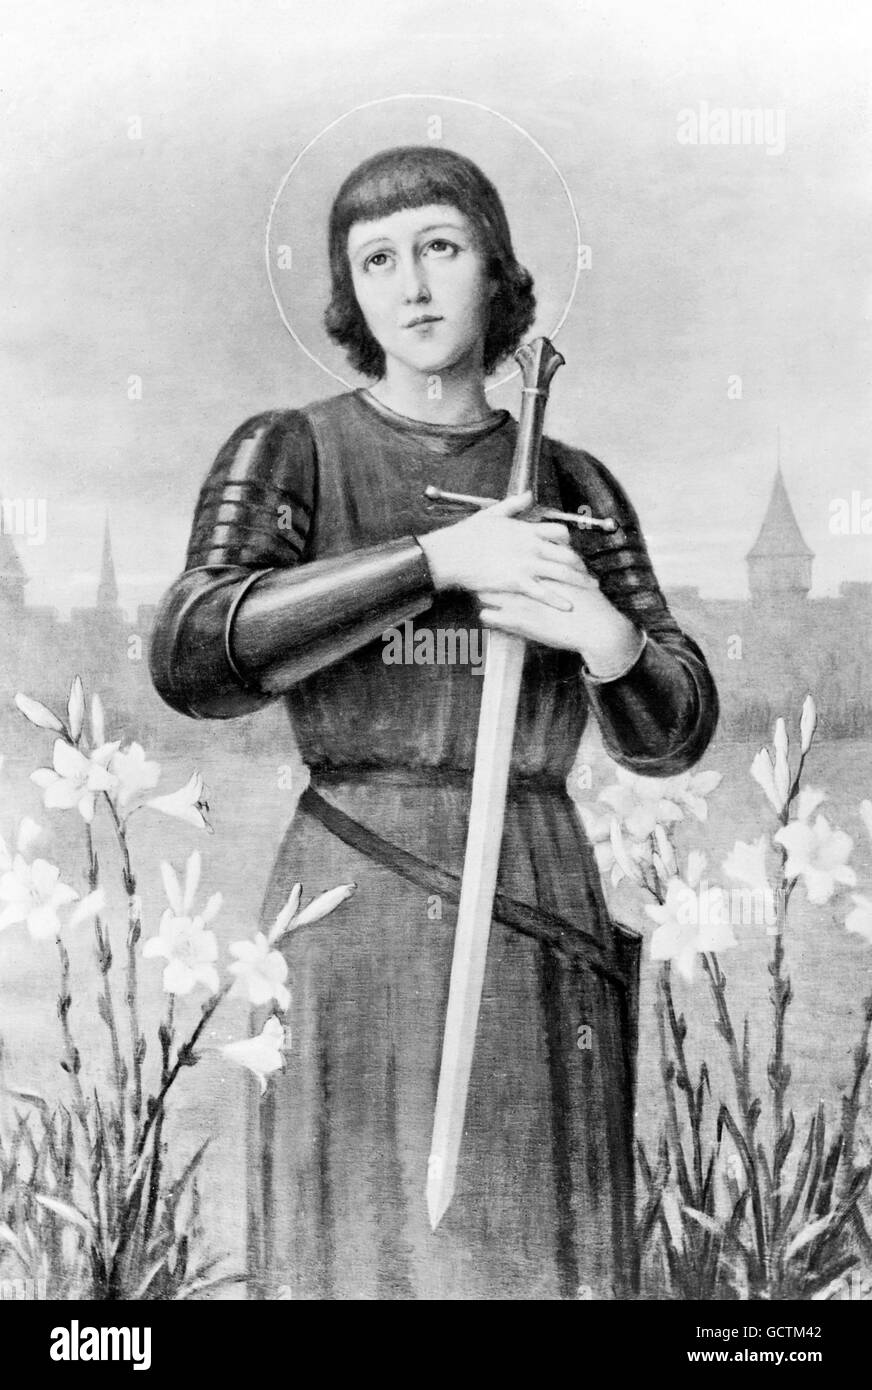 Joan of Arc (Jeanne d'Arc: c.1412-1431), often referred to as  the 'The Maid of Orléans'. - Stock Image